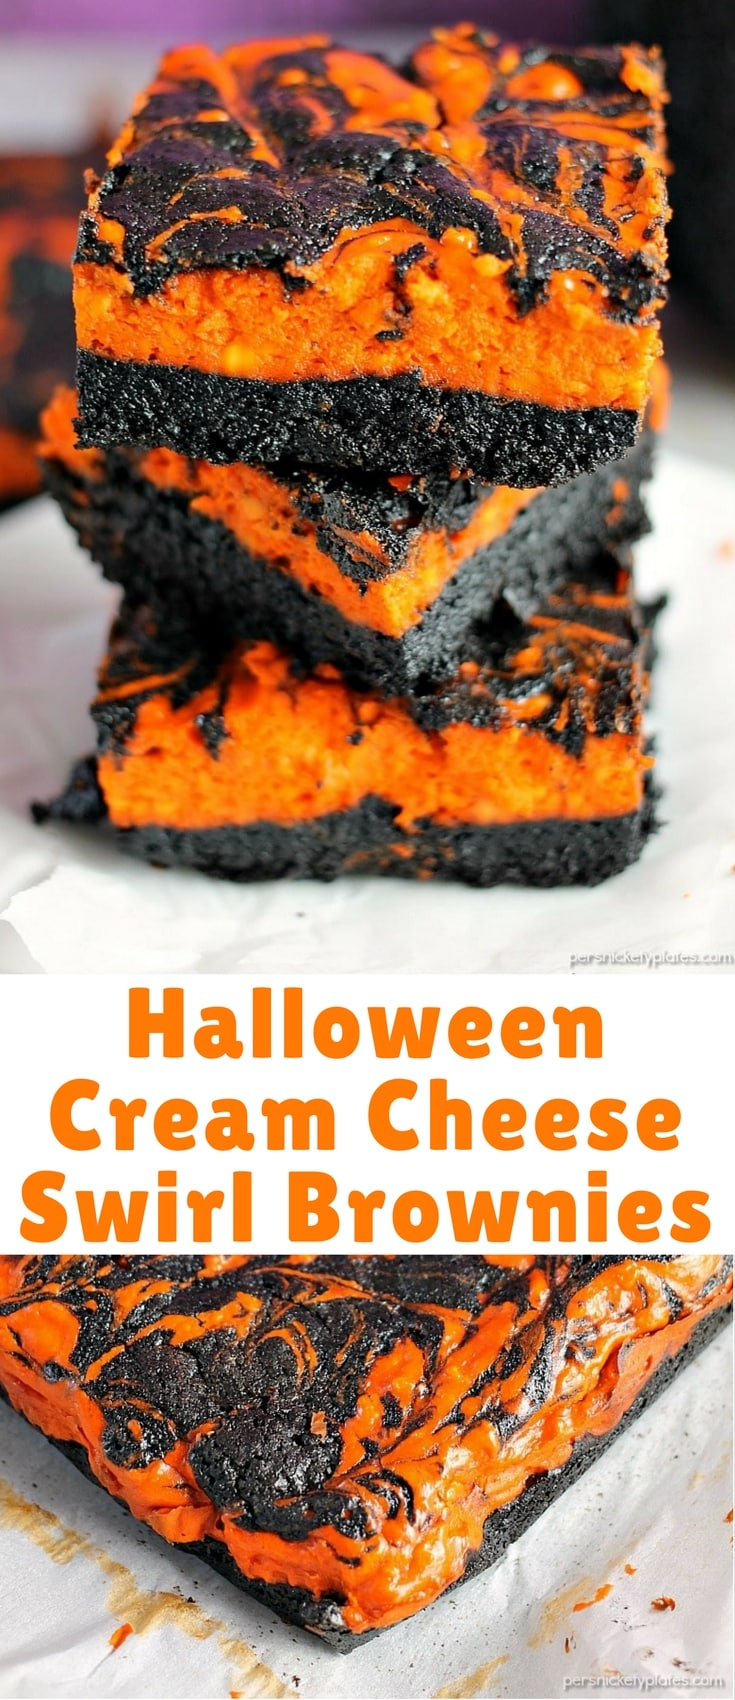 Halloween Cream Cheese Swirl Brownies have a layer of rich, dark chocolate brownie topped with a layer of orange cheesecake then swirled together for a spooky treat.